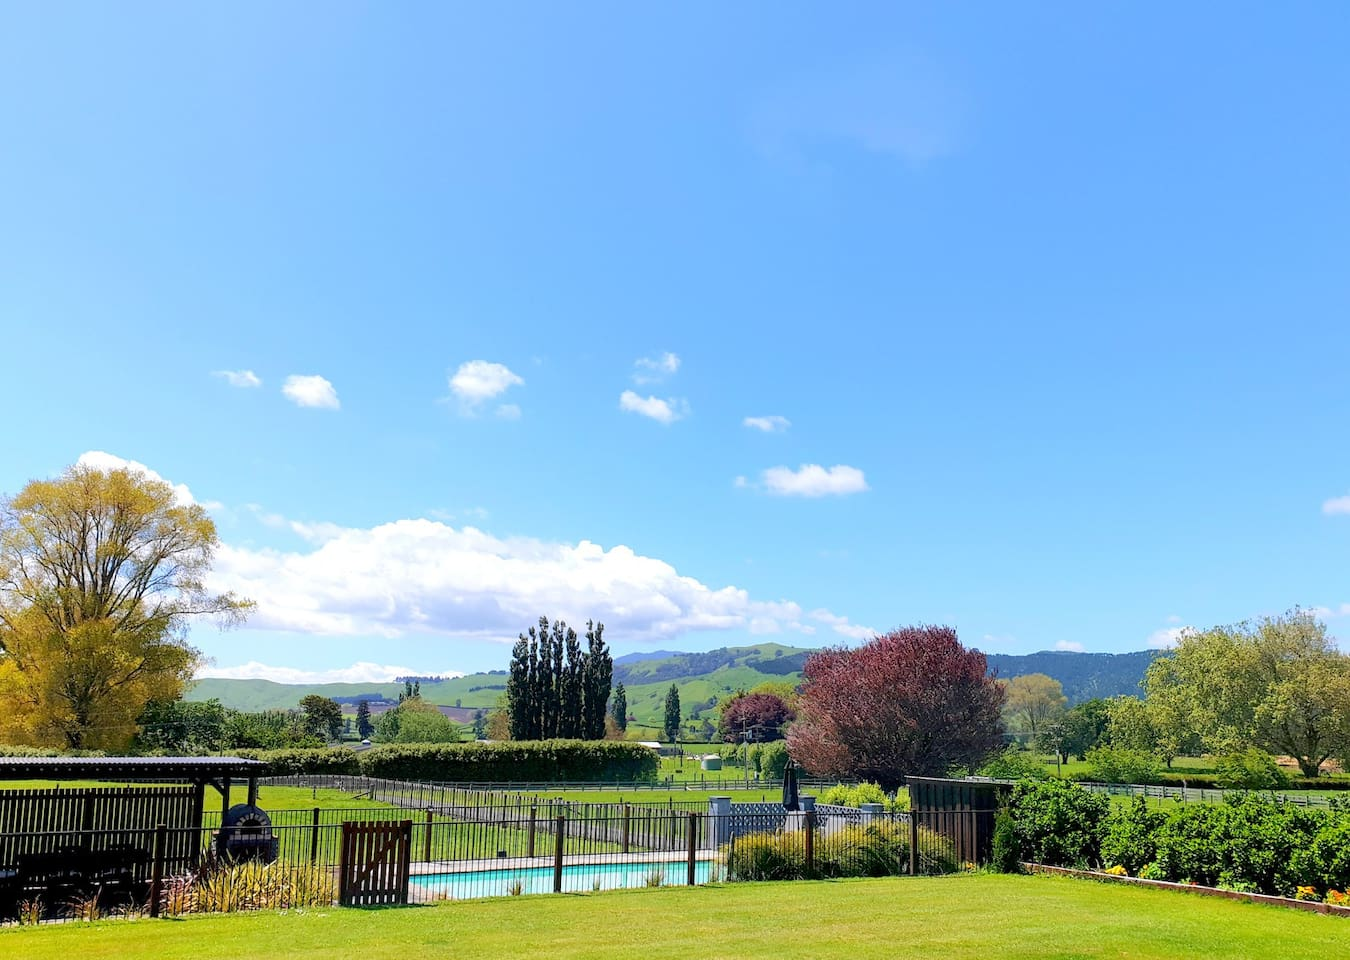 View of pool, garden and distant hills from our deck. Guests are welcome to use the pool and also the covered outdoor seating area.